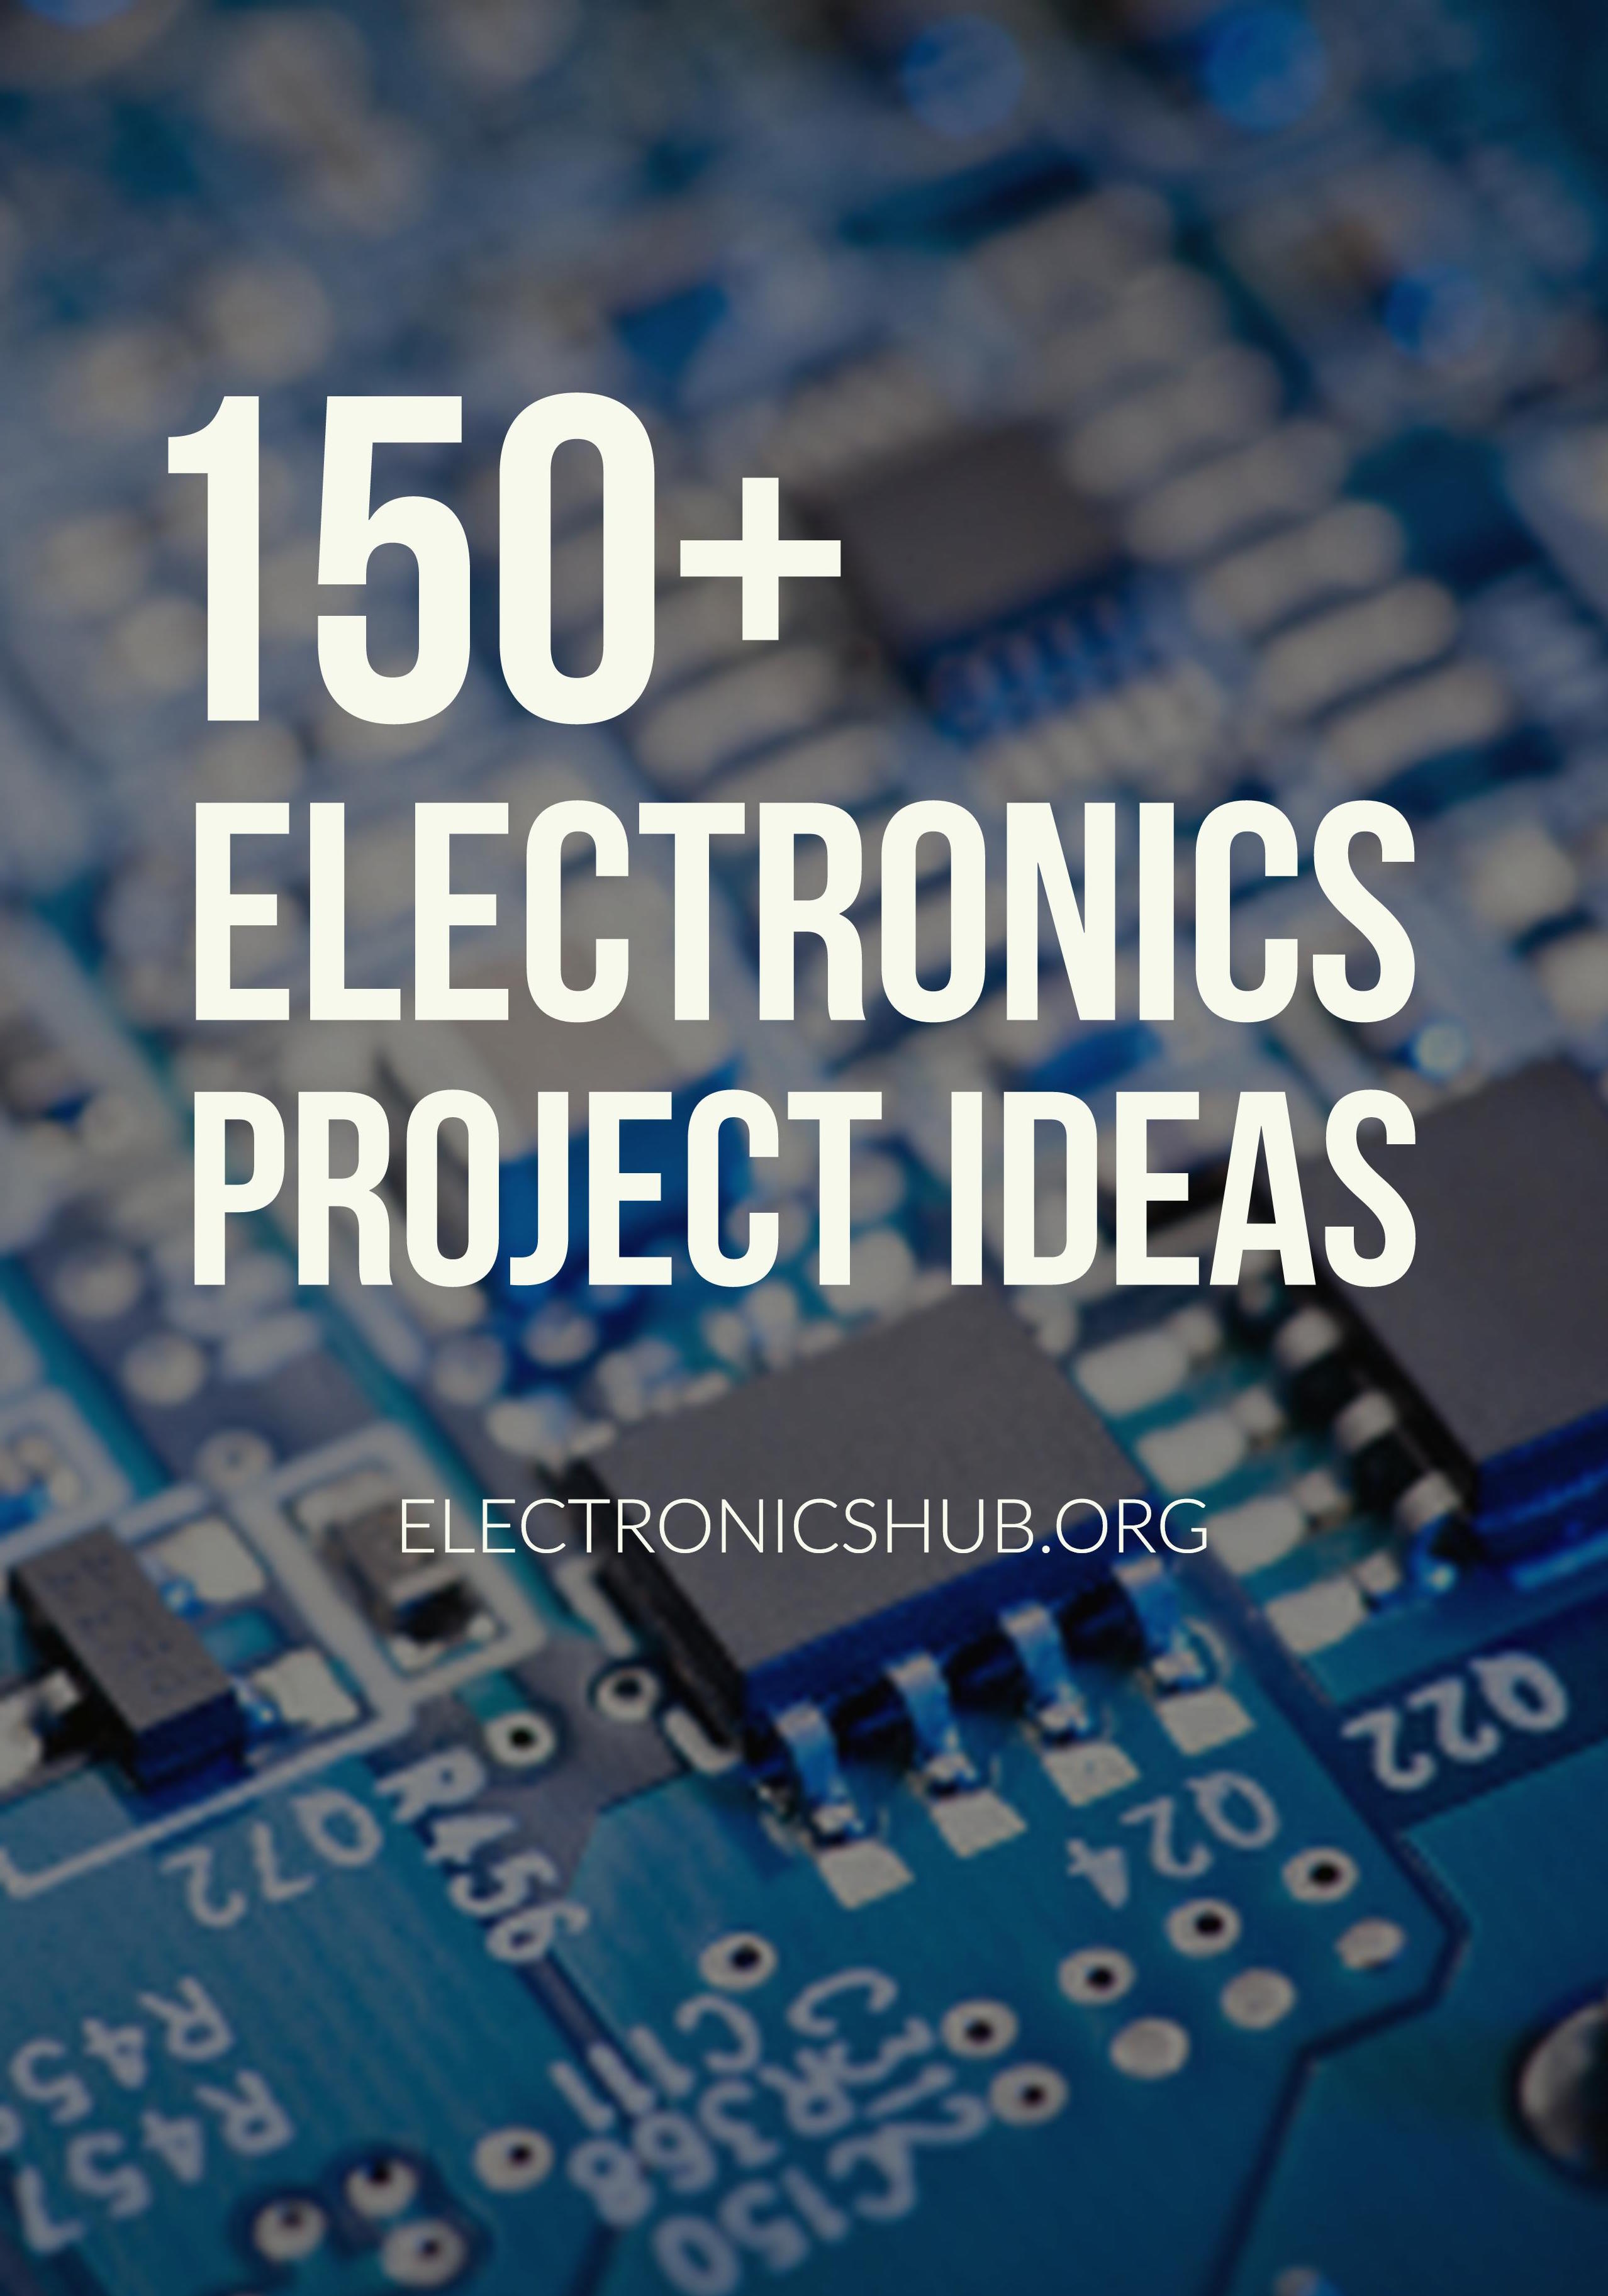 150 Electronics Projects For Engineering Students The Frequency Counter Is Built Around A Pic16f84 Microcontroller